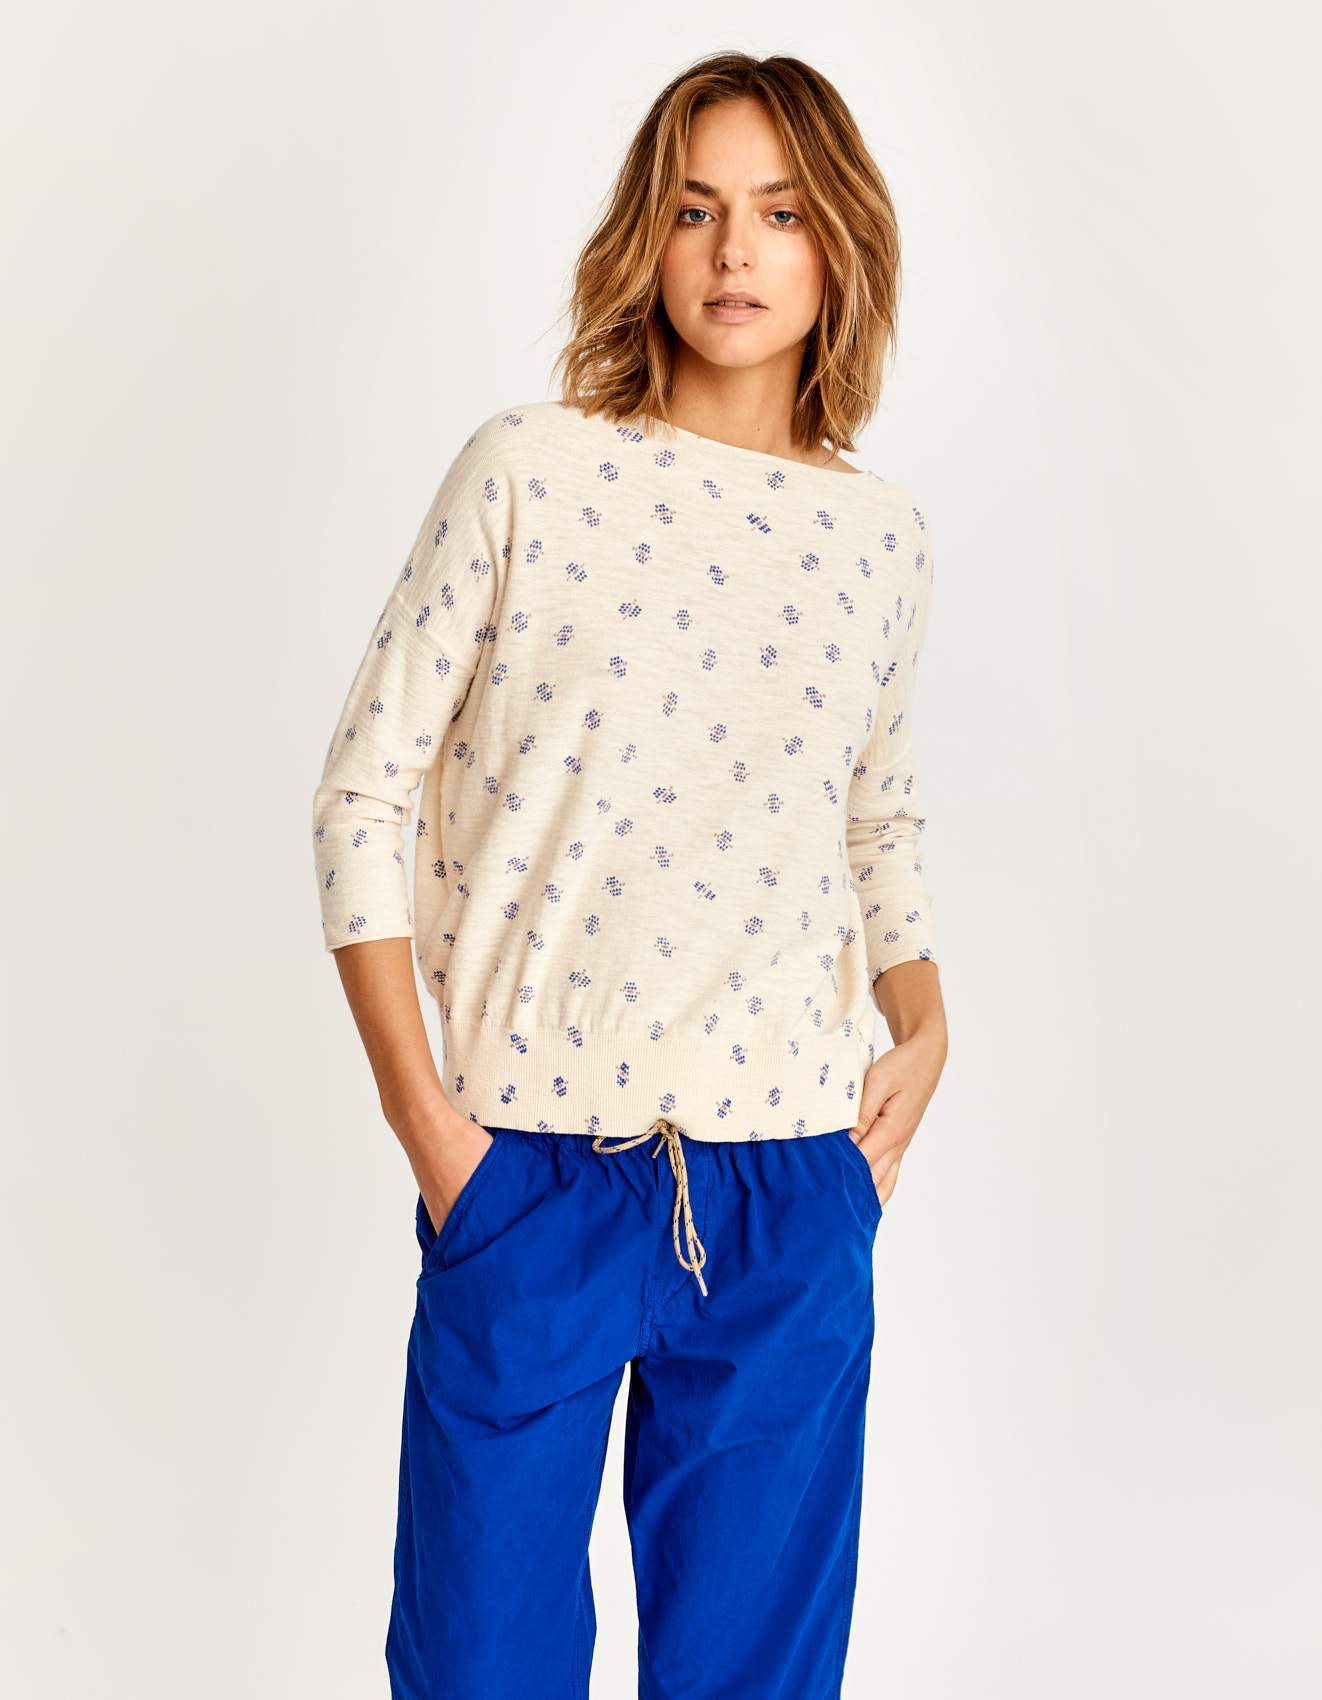 Bellerose white slub cotton knitwear for women